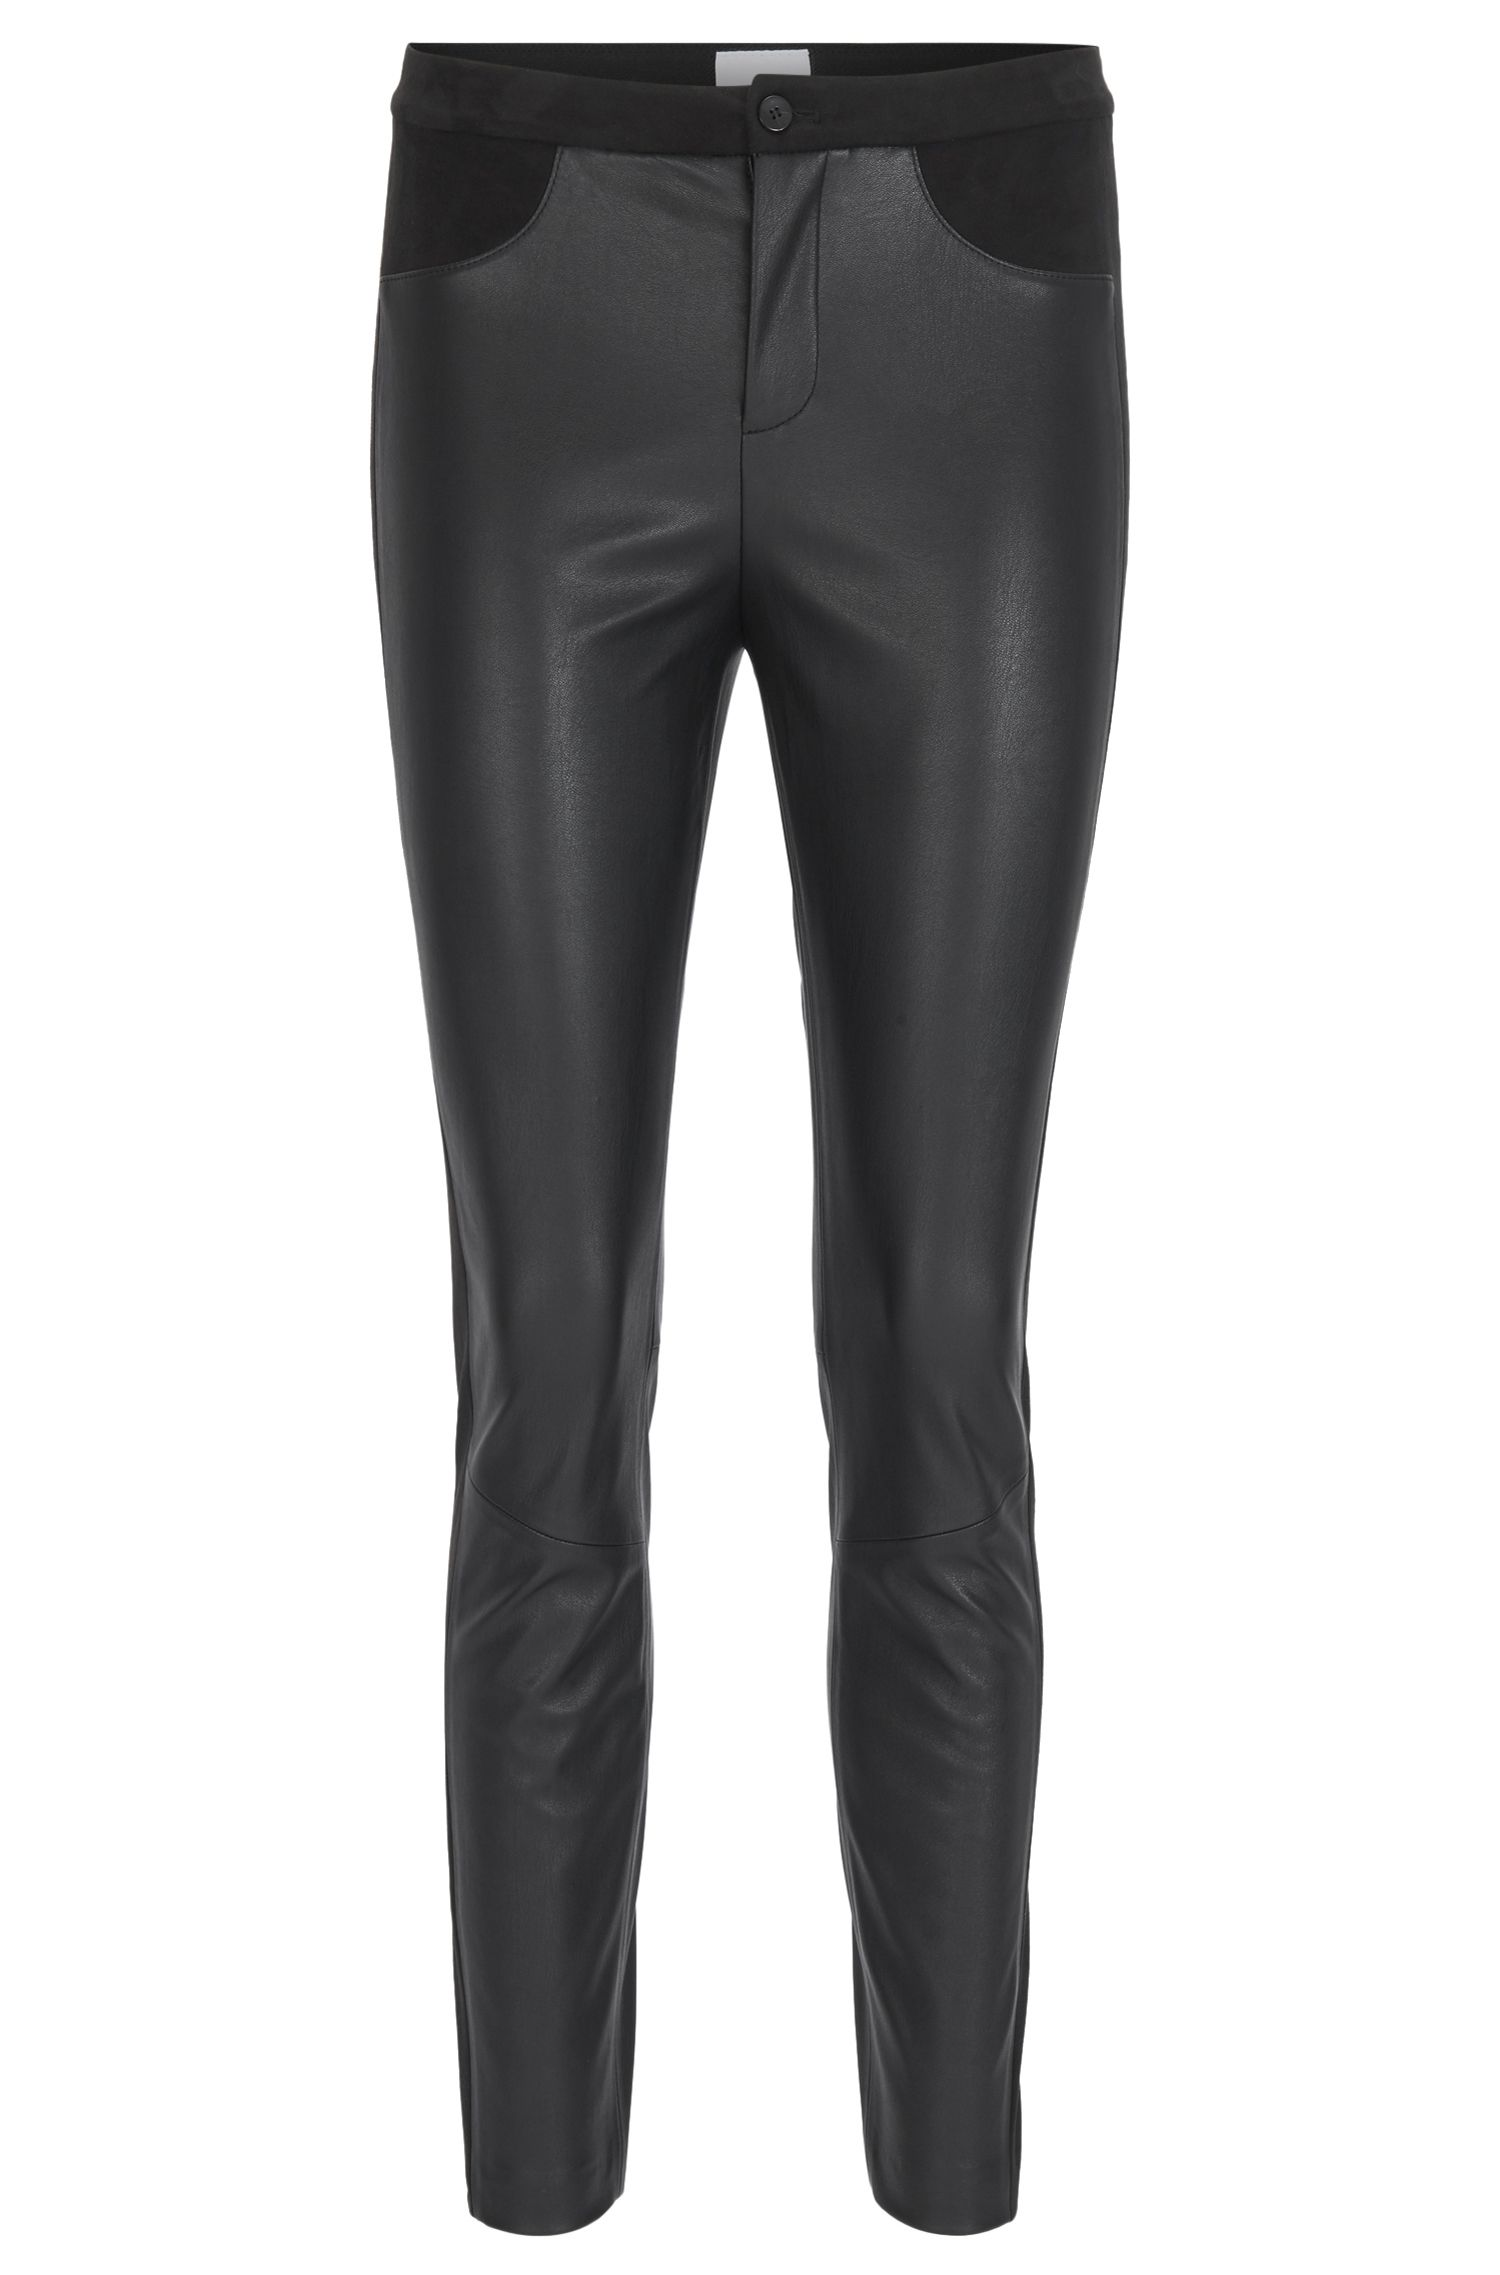 Skinny-fit trousers in friendly leather